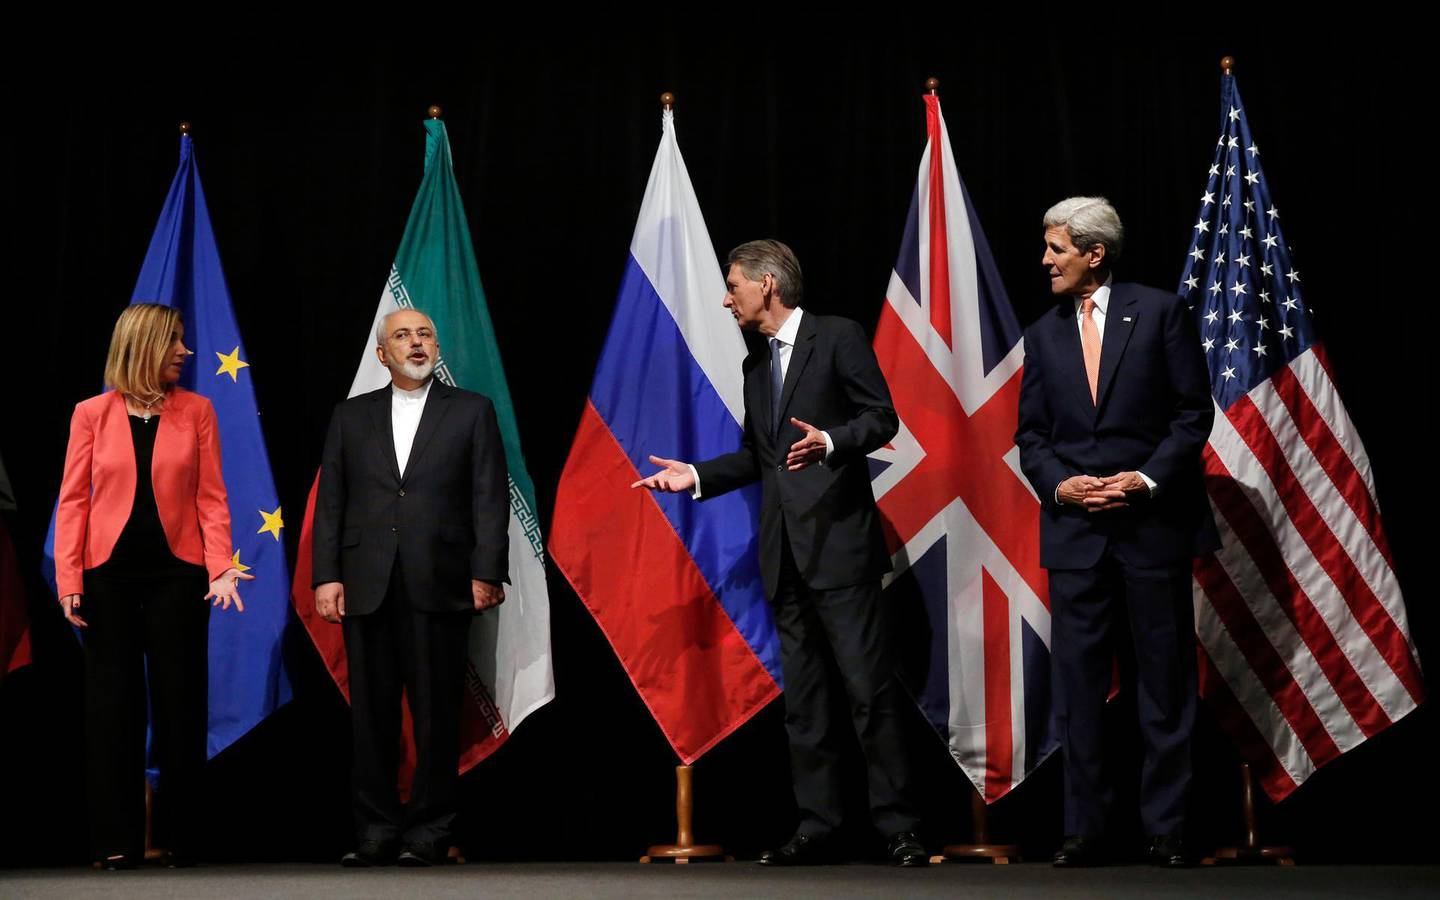 FILE - In this July 14, 2015 file photo, British Foreign Secretary Philip Hammond, 2nd right, U.S. Secretary of State John Kerry, right, and European Union High Representative for Foreign Affairs and Security Policy Federica Mogherini, left, talk to Iranian Foreign Minister Mohammad Javad Zarif as the wait for Russian Foreign Minister Sergey Lavrov, for a group picture in Vienna, Austria. President Hassan Rouhani is reportedly set to announce Wednesday, May 8, 2019, ways the Islamic Republic will react to continued U.S. pressure after President Donald Trump pulled America from Tehran's nuclear deal with world powers. (Carlos Barria, Pool Photo via AP, File)